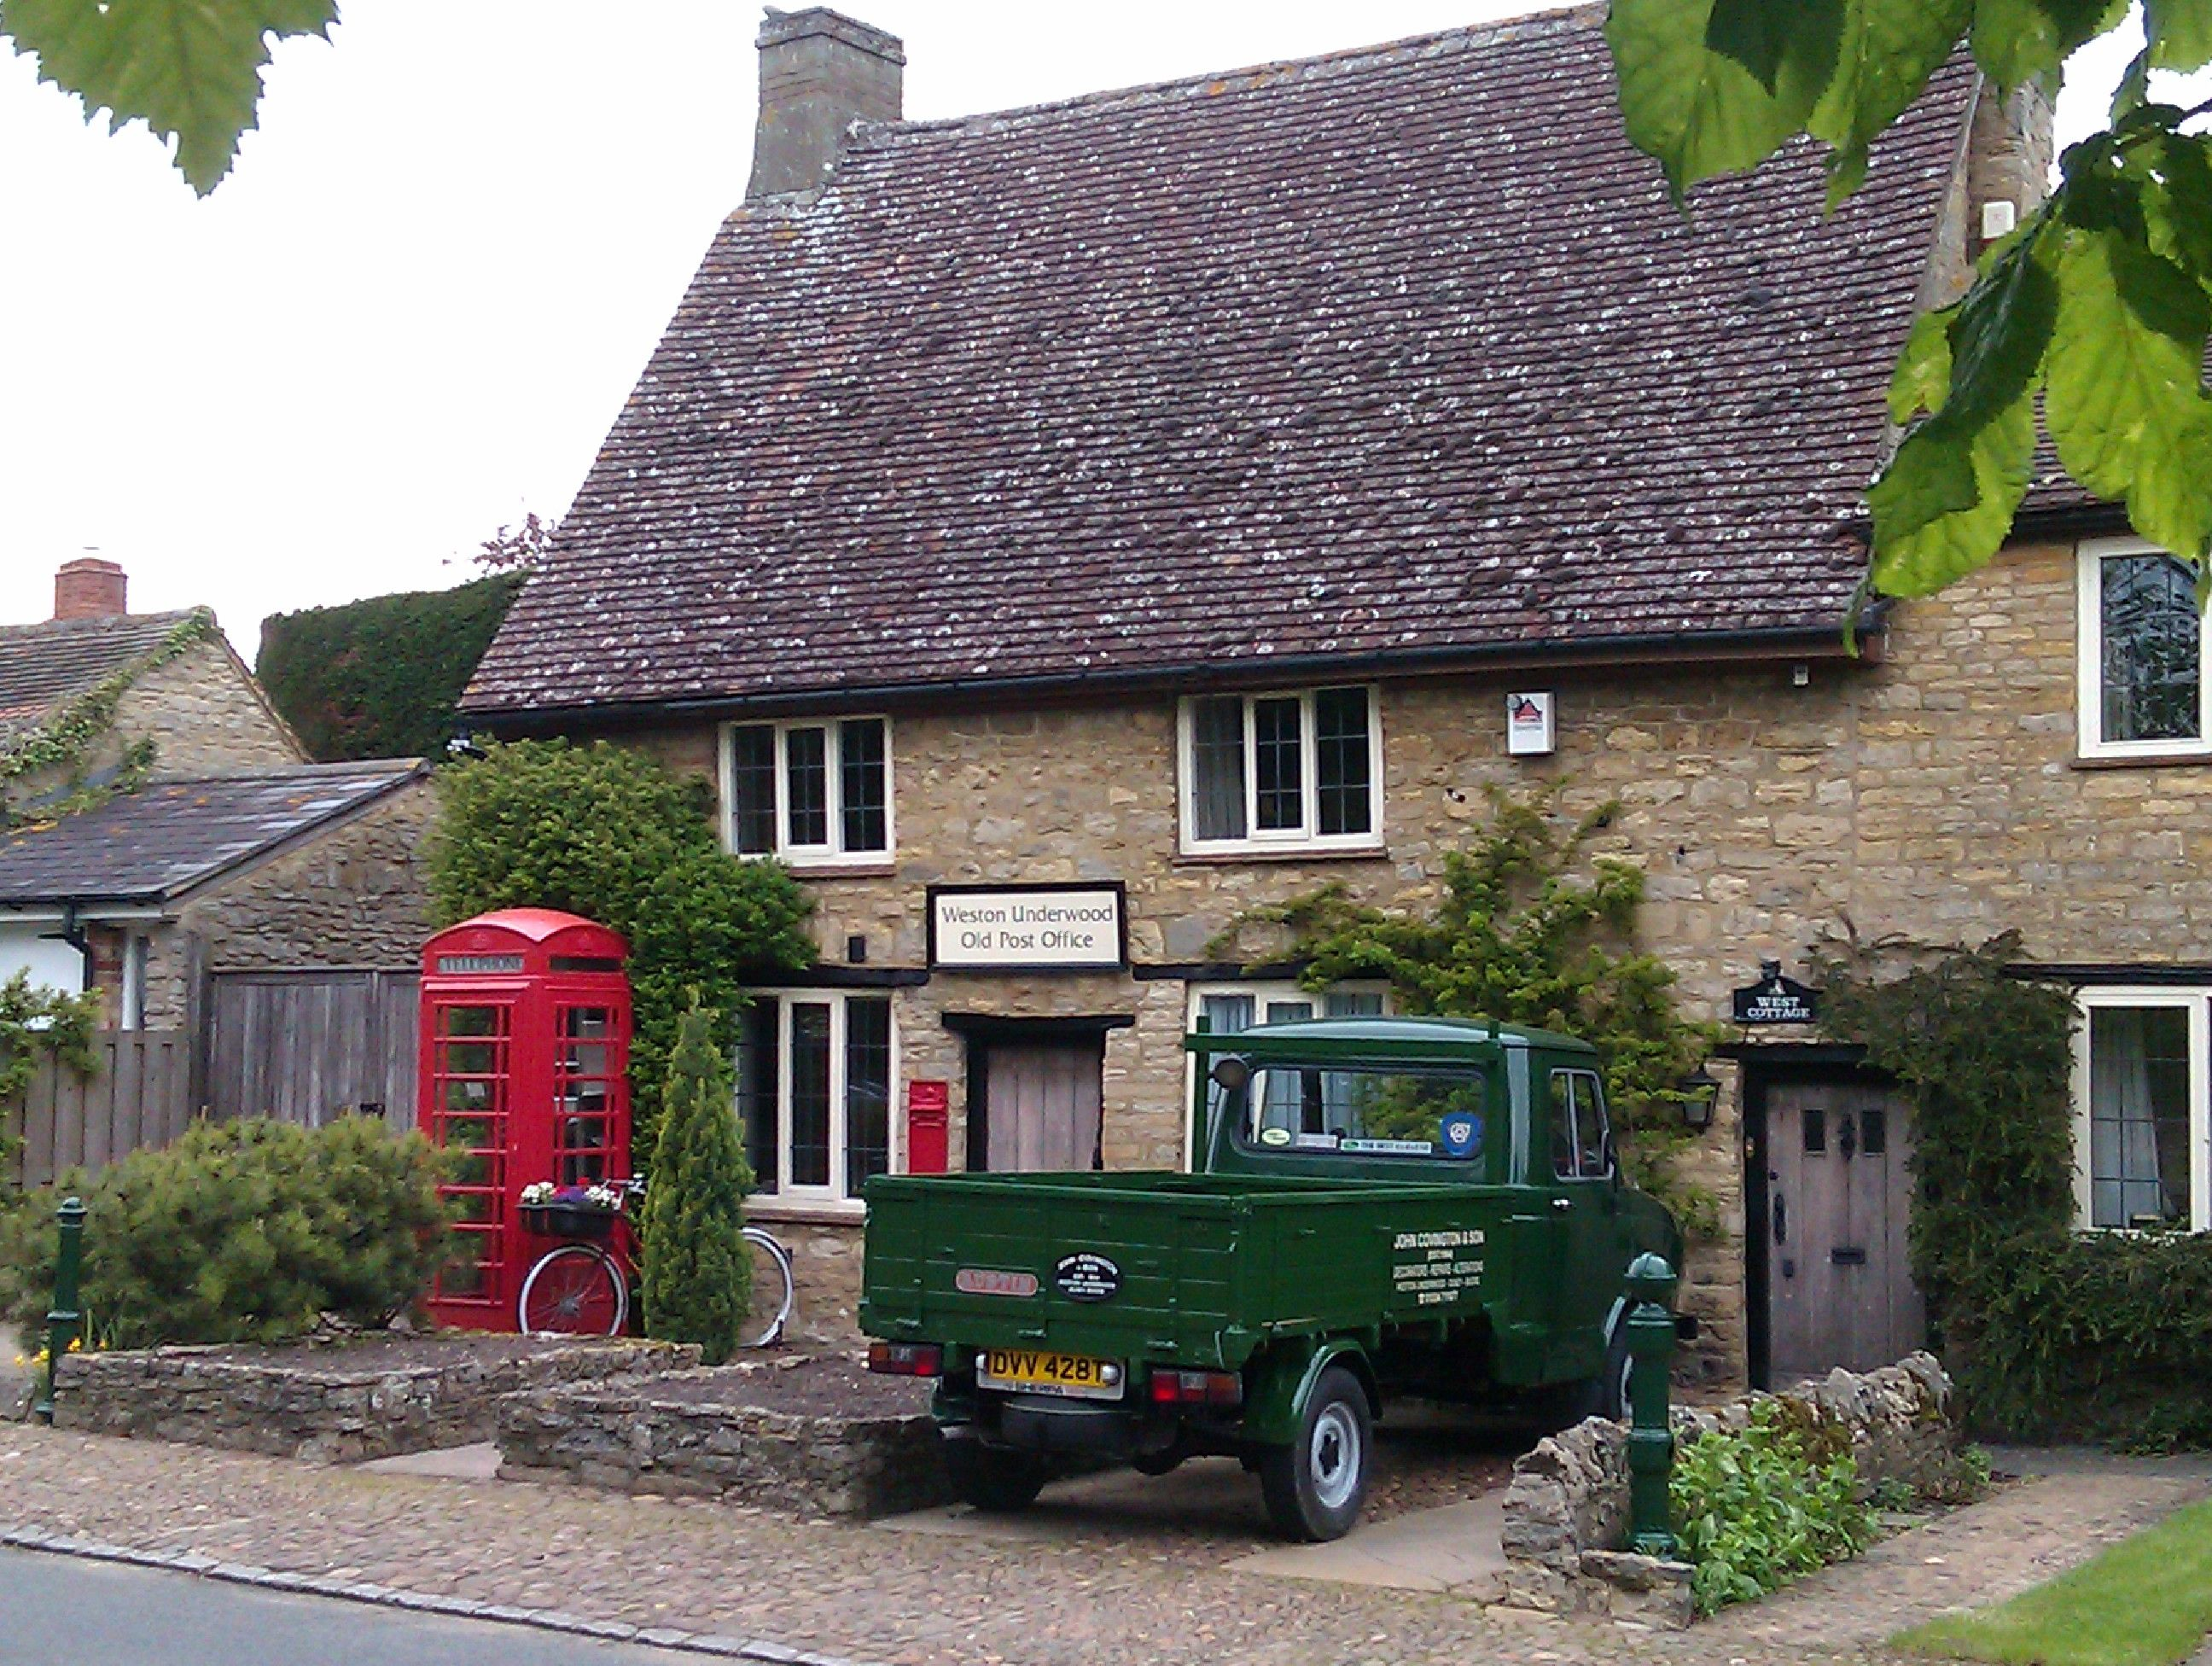 Very English, spot, classic vehicle, telephone box and the